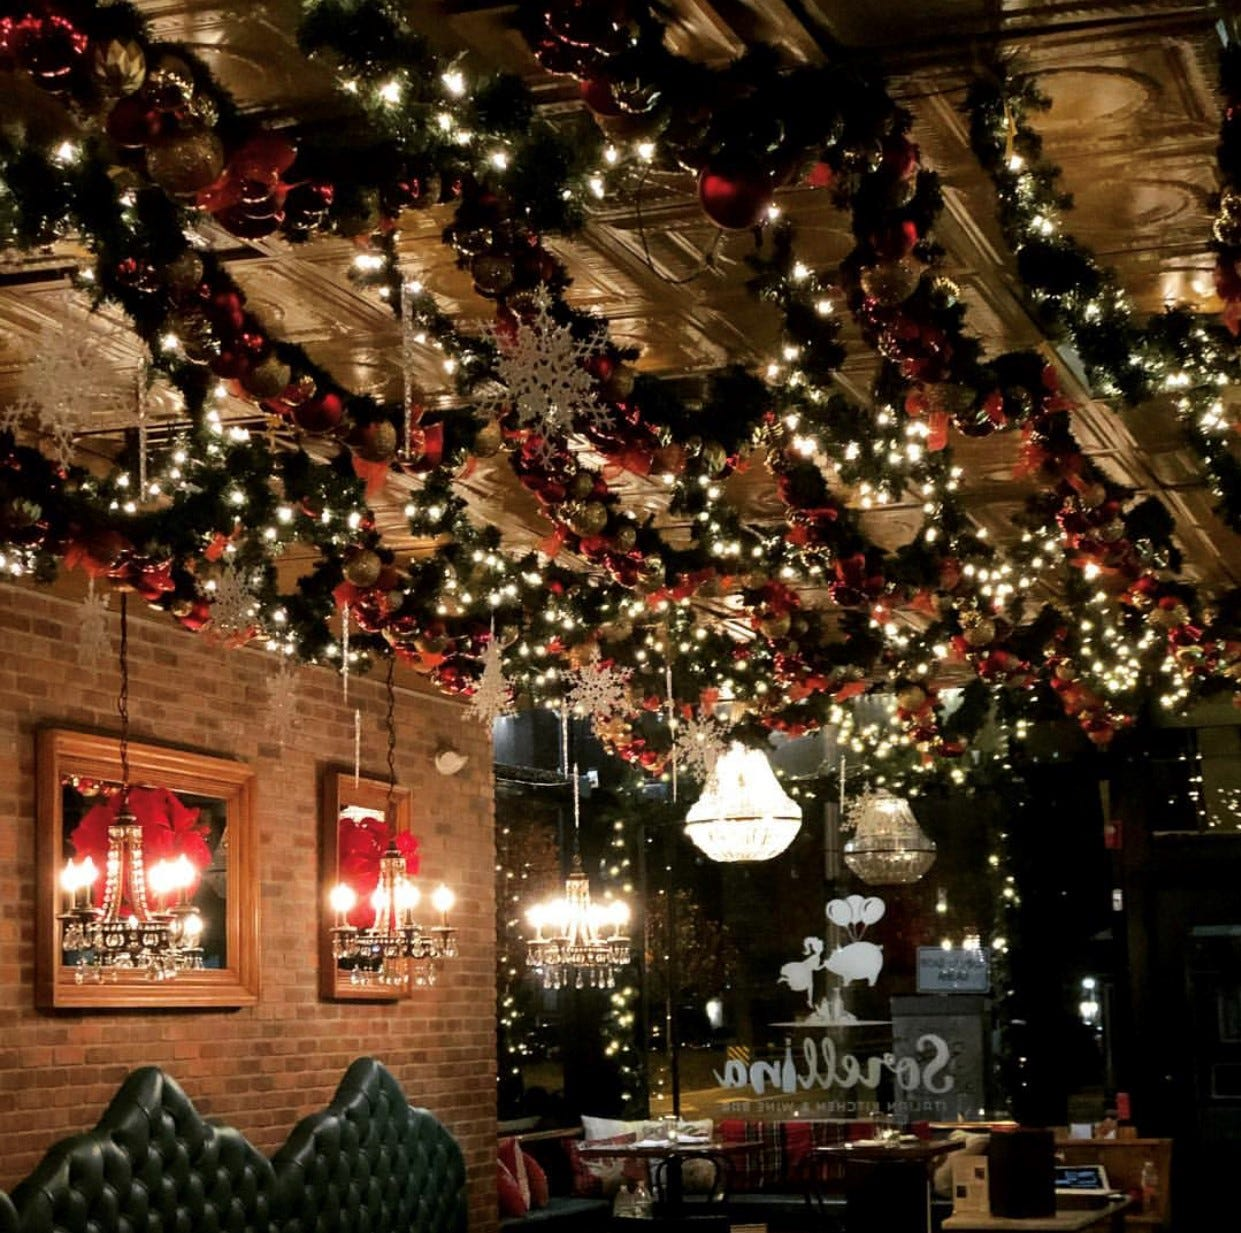 Tasteful to tacky: North Jersey's most festive restaurants to visit during the holidays